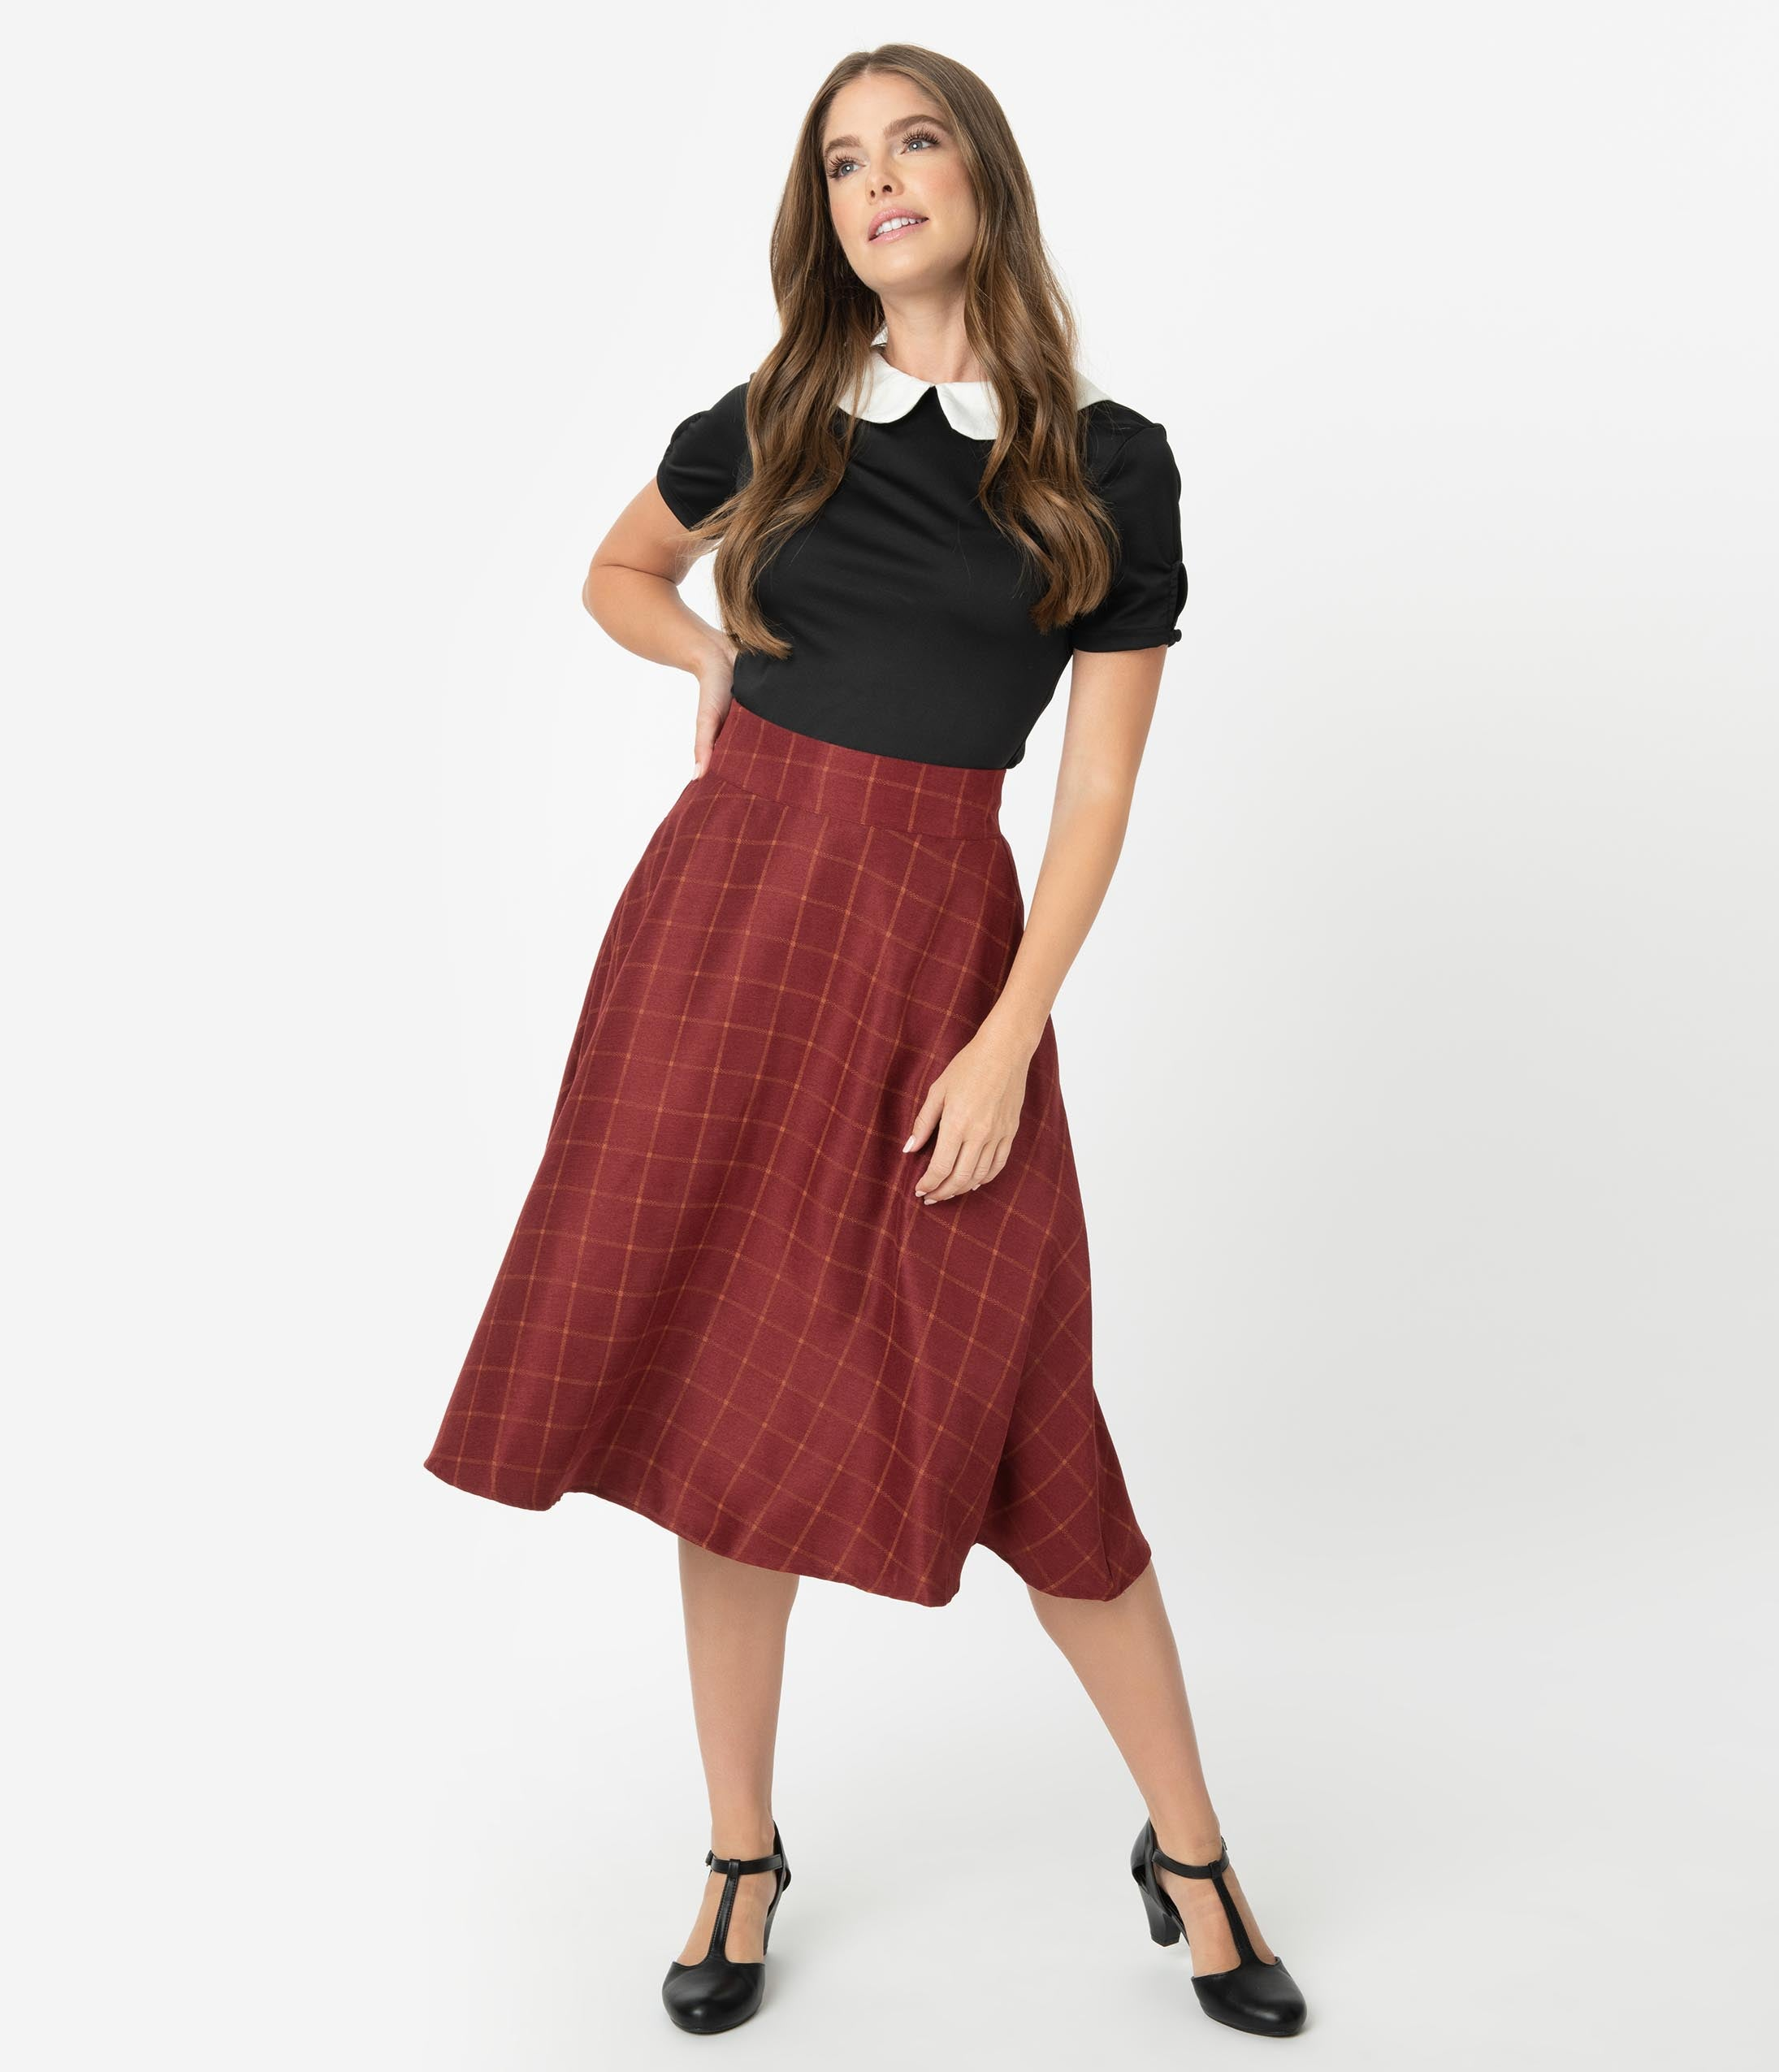 1950s Swing Skirt, Poodle Skirt, Pencil Skirts Unique Vintage Retro Style Burgundy Windowpane High Waist Vivien Swing Skirt $58.00 AT vintagedancer.com